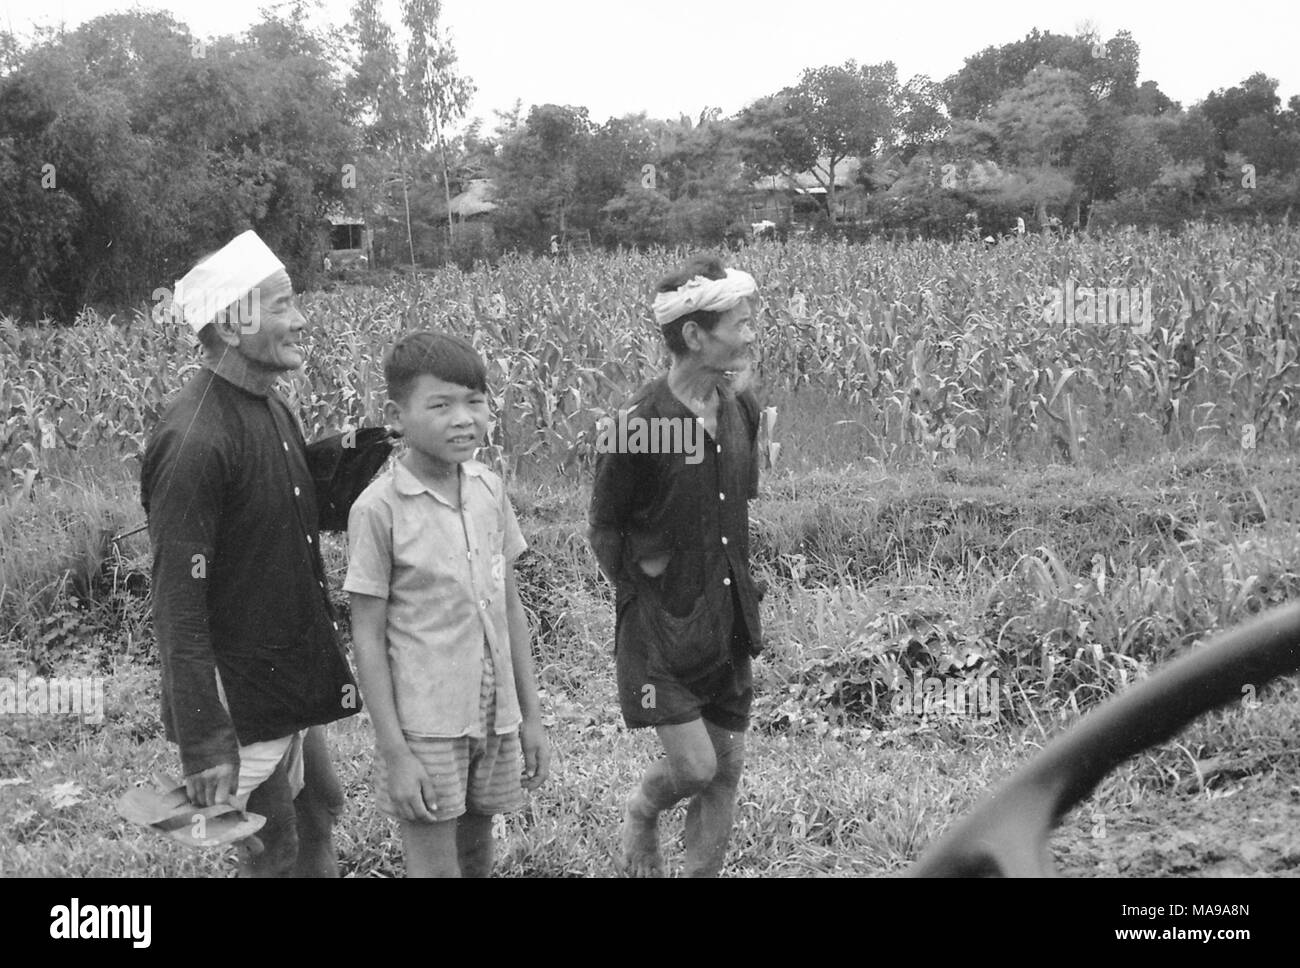 Black and white photograph showing three Vietnamese males, one boy wearing shorts, and two older men wearing long sleeve shirts, one wearing a hat and the other a bandana, standing in front of a field, with trees and houses in the background, photographed in Vietnam during the Vietnam War (1955-1975), 1968. () Stock Photo